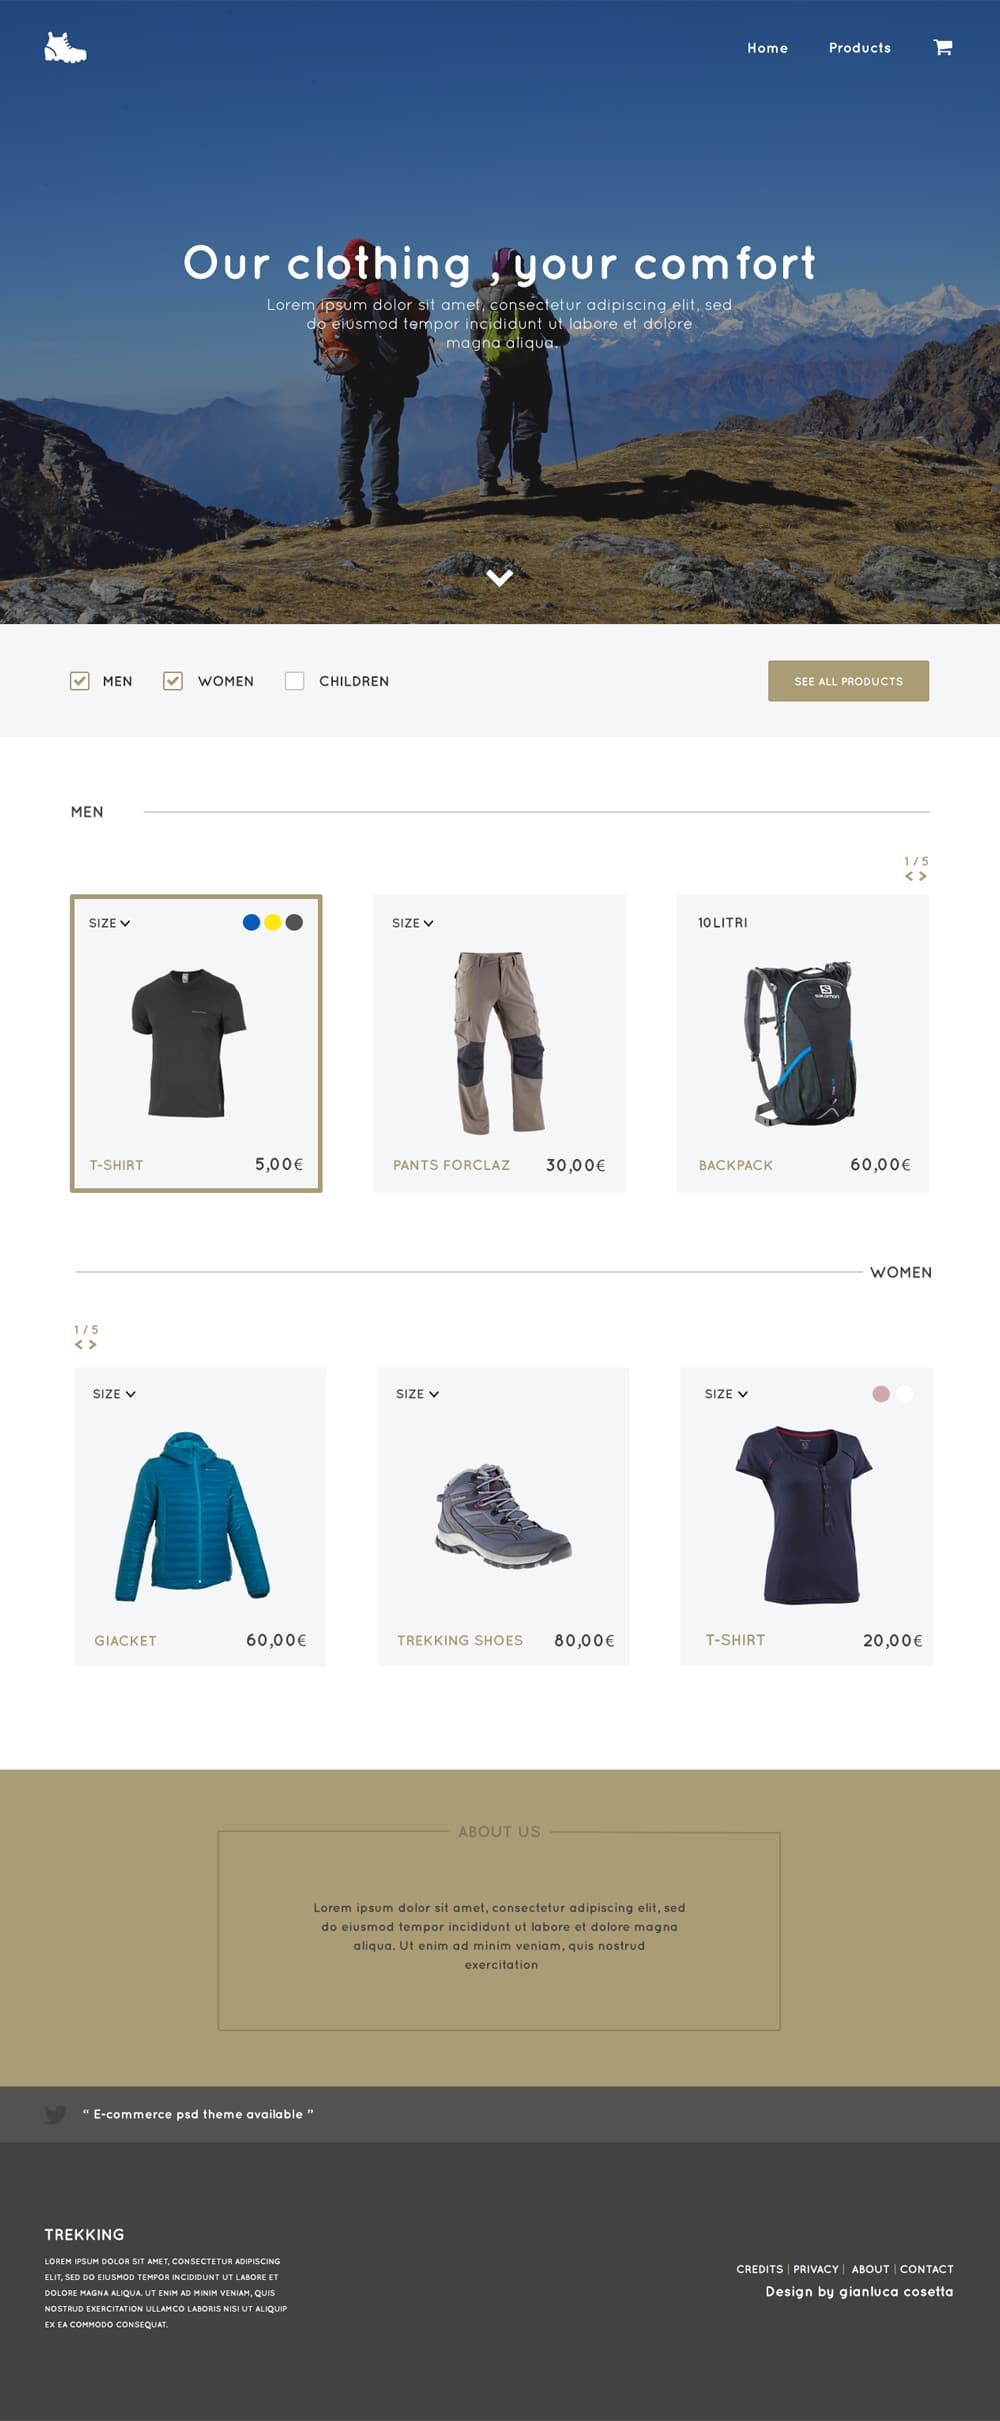 Trekking Store - Free E Commerce Web Template PSD